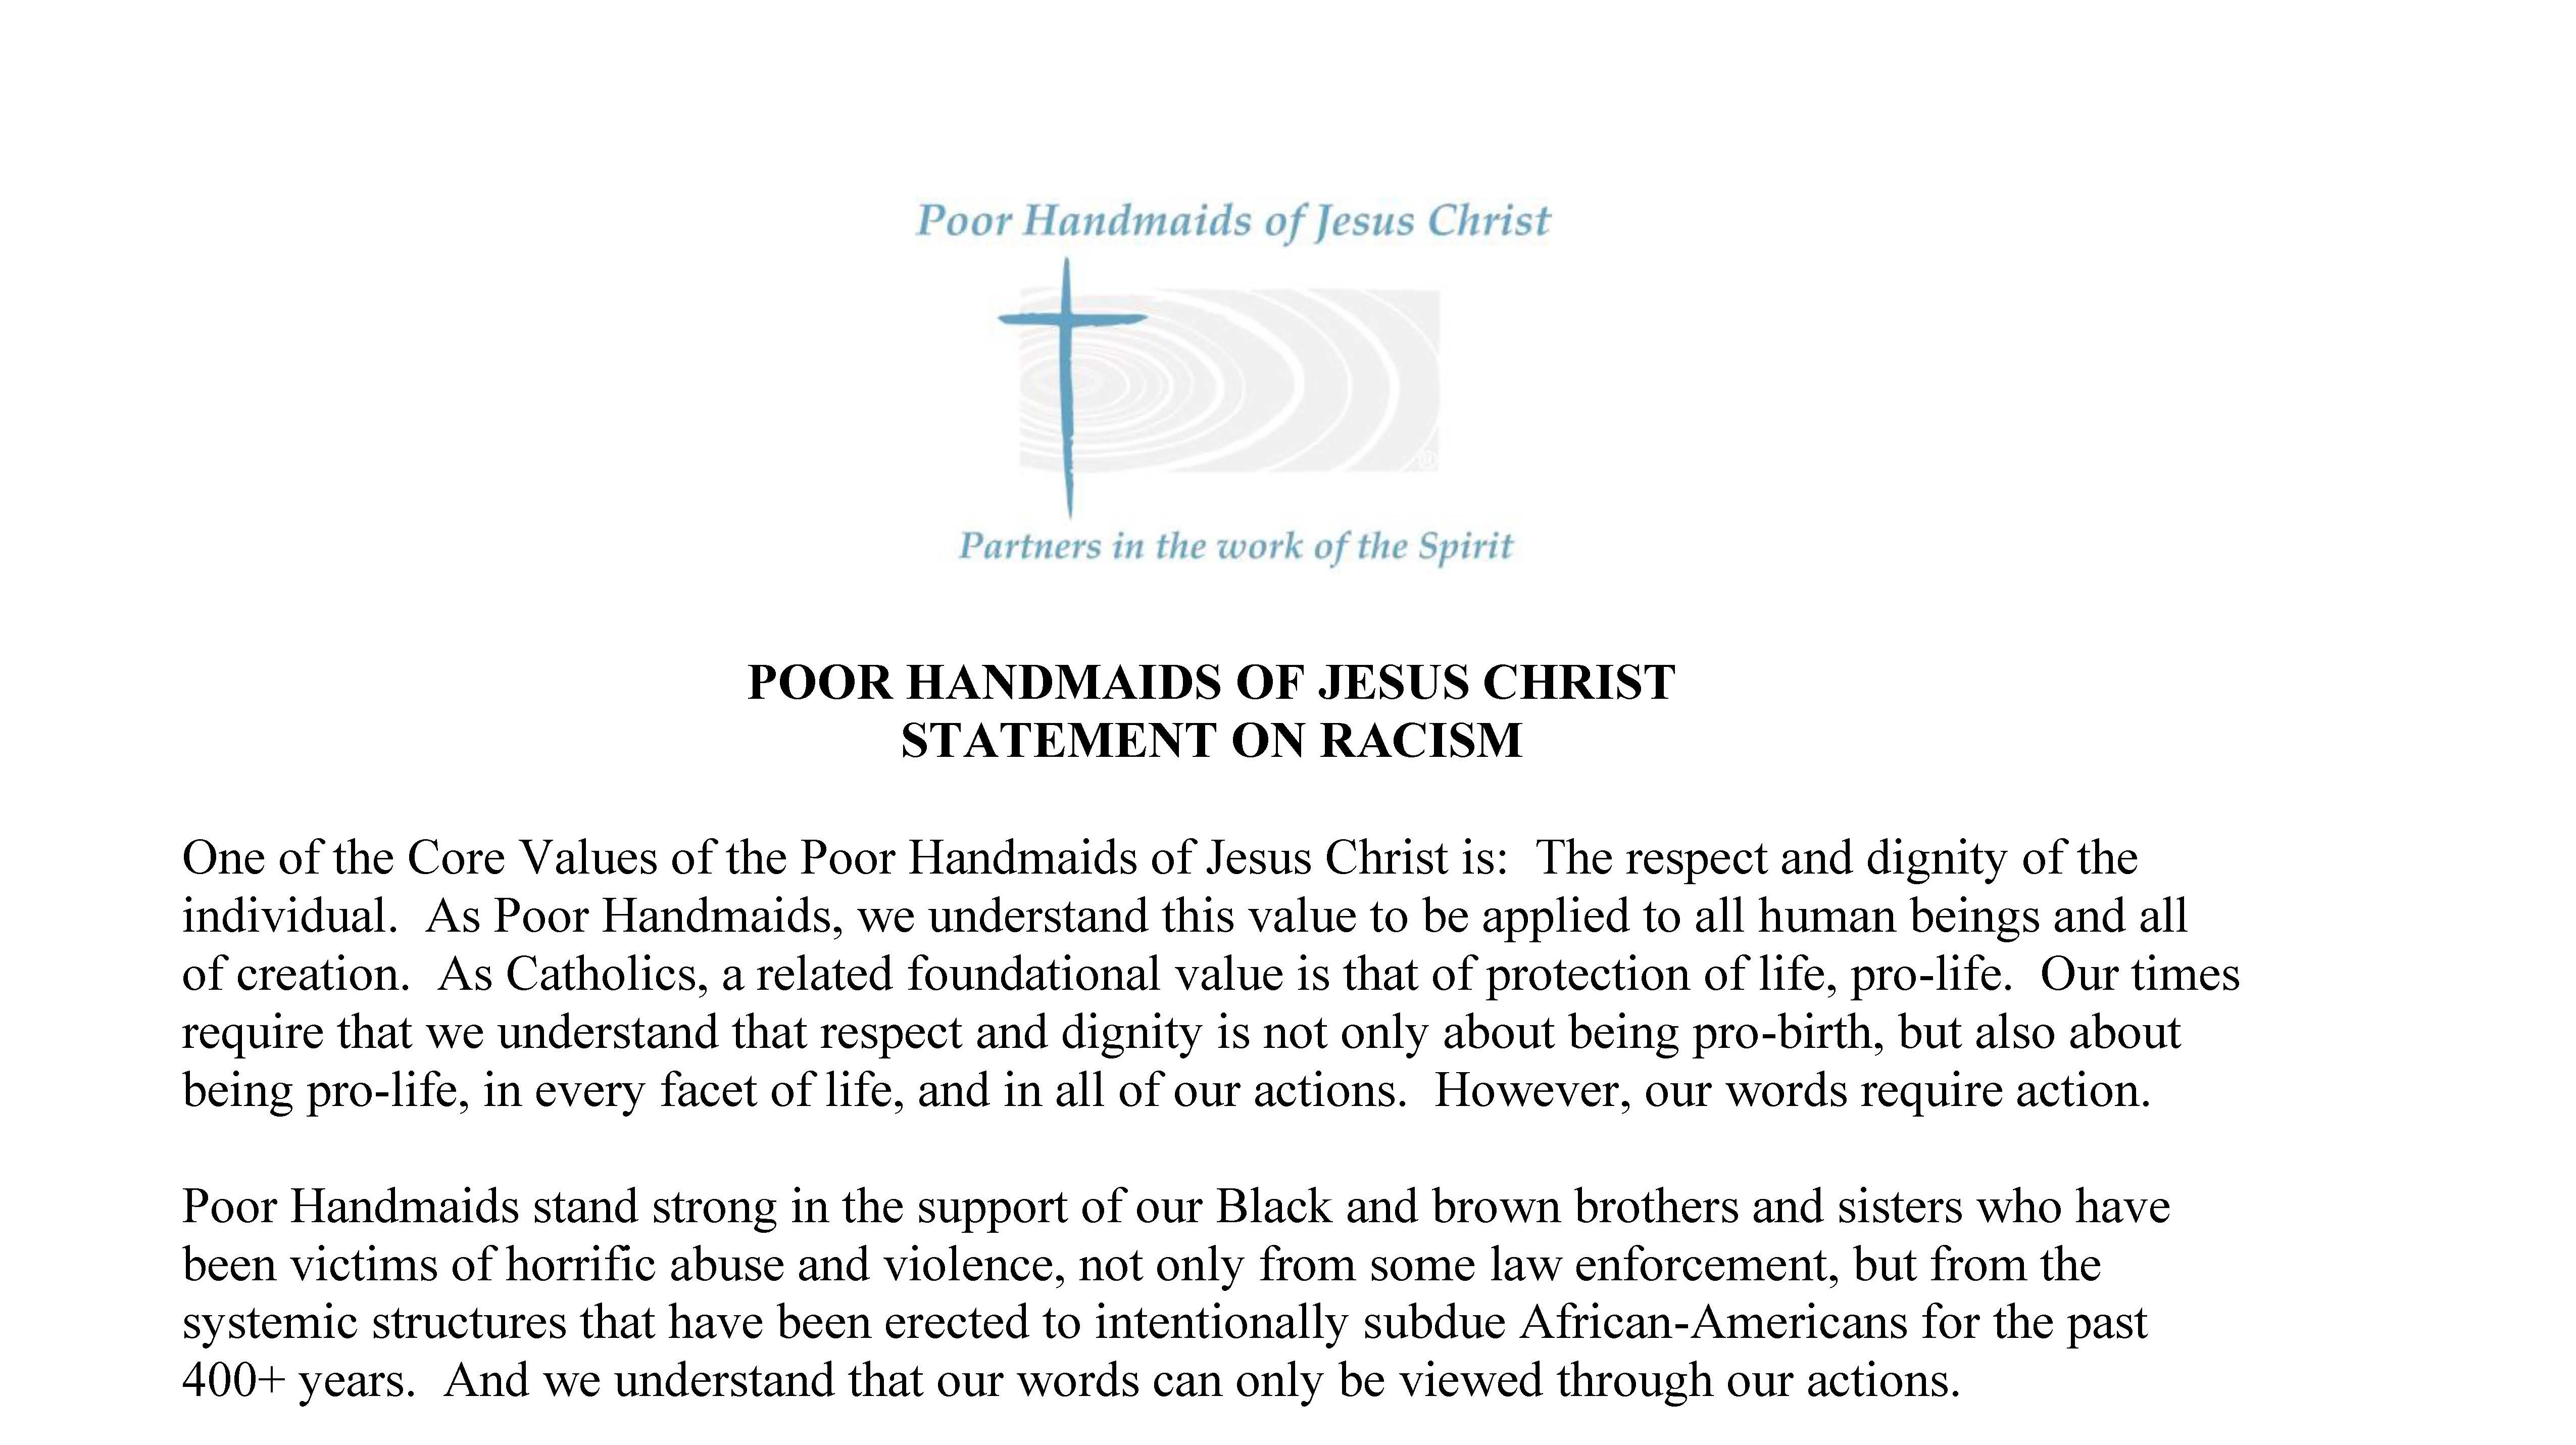 PHJC Statement on Racism